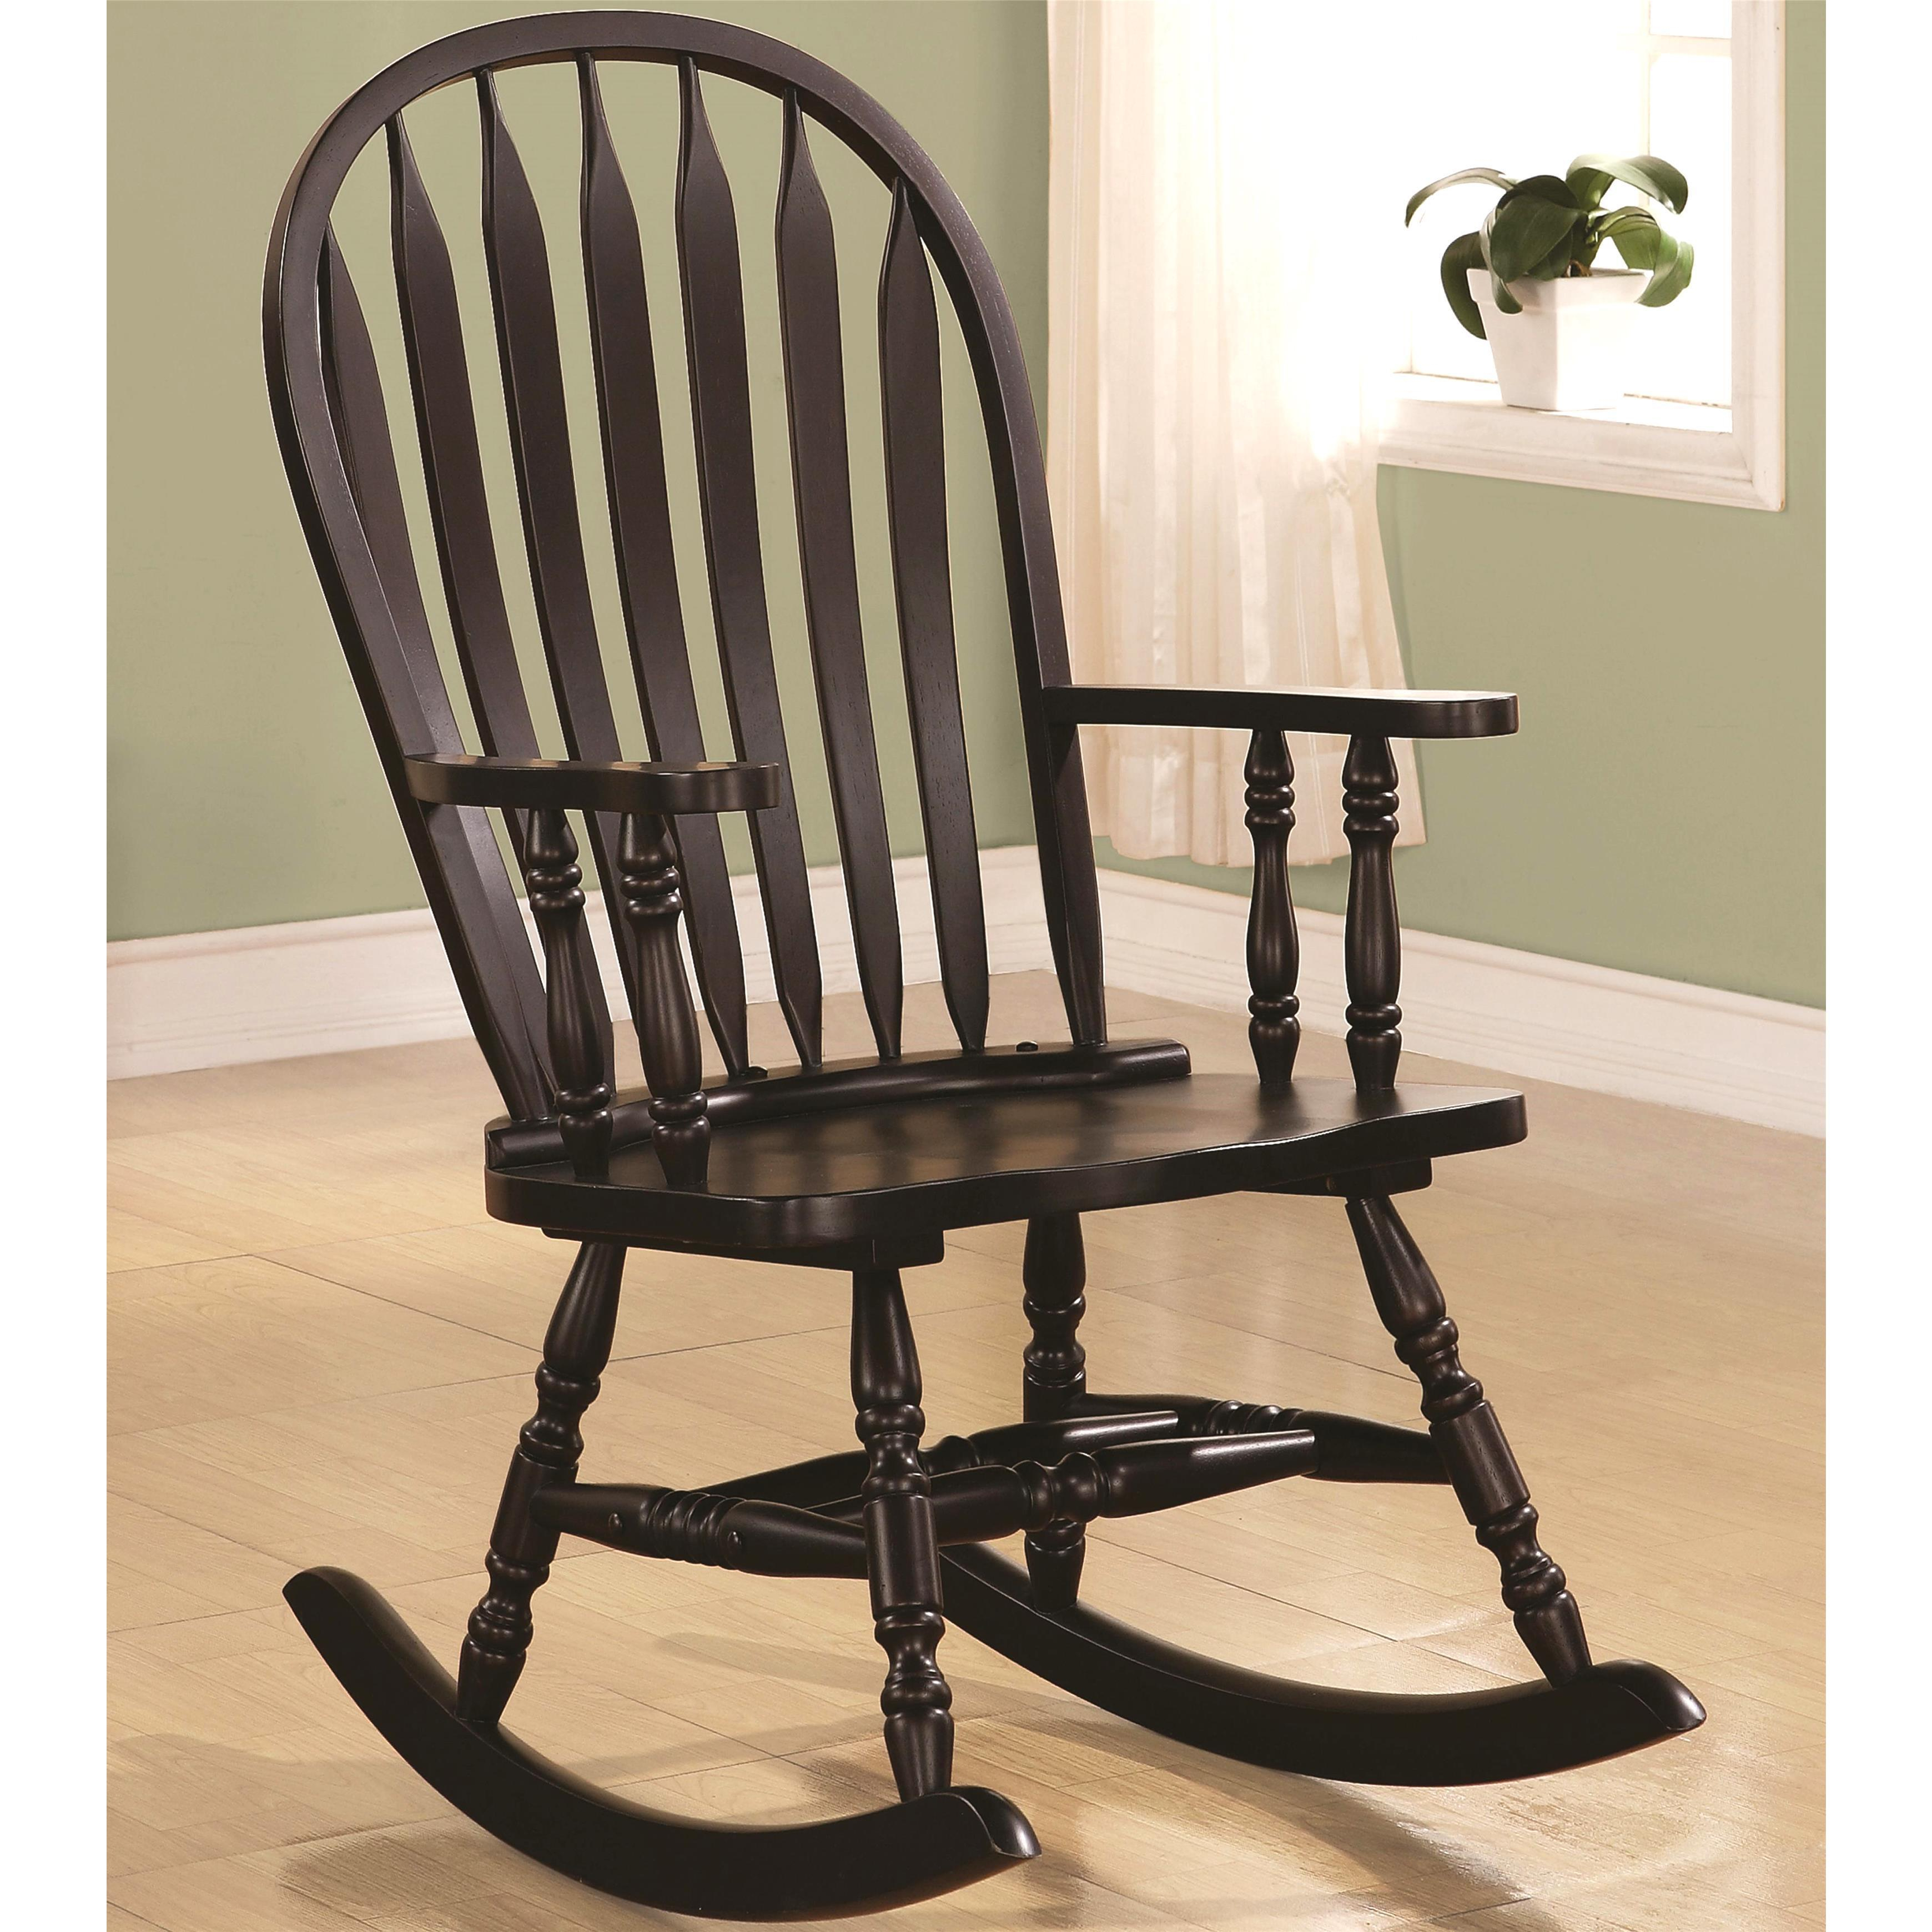 Balsam Windsor Arrow Back Rocking Chair With Regard To Ethel Country White Rocking Chairs (#2 of 20)